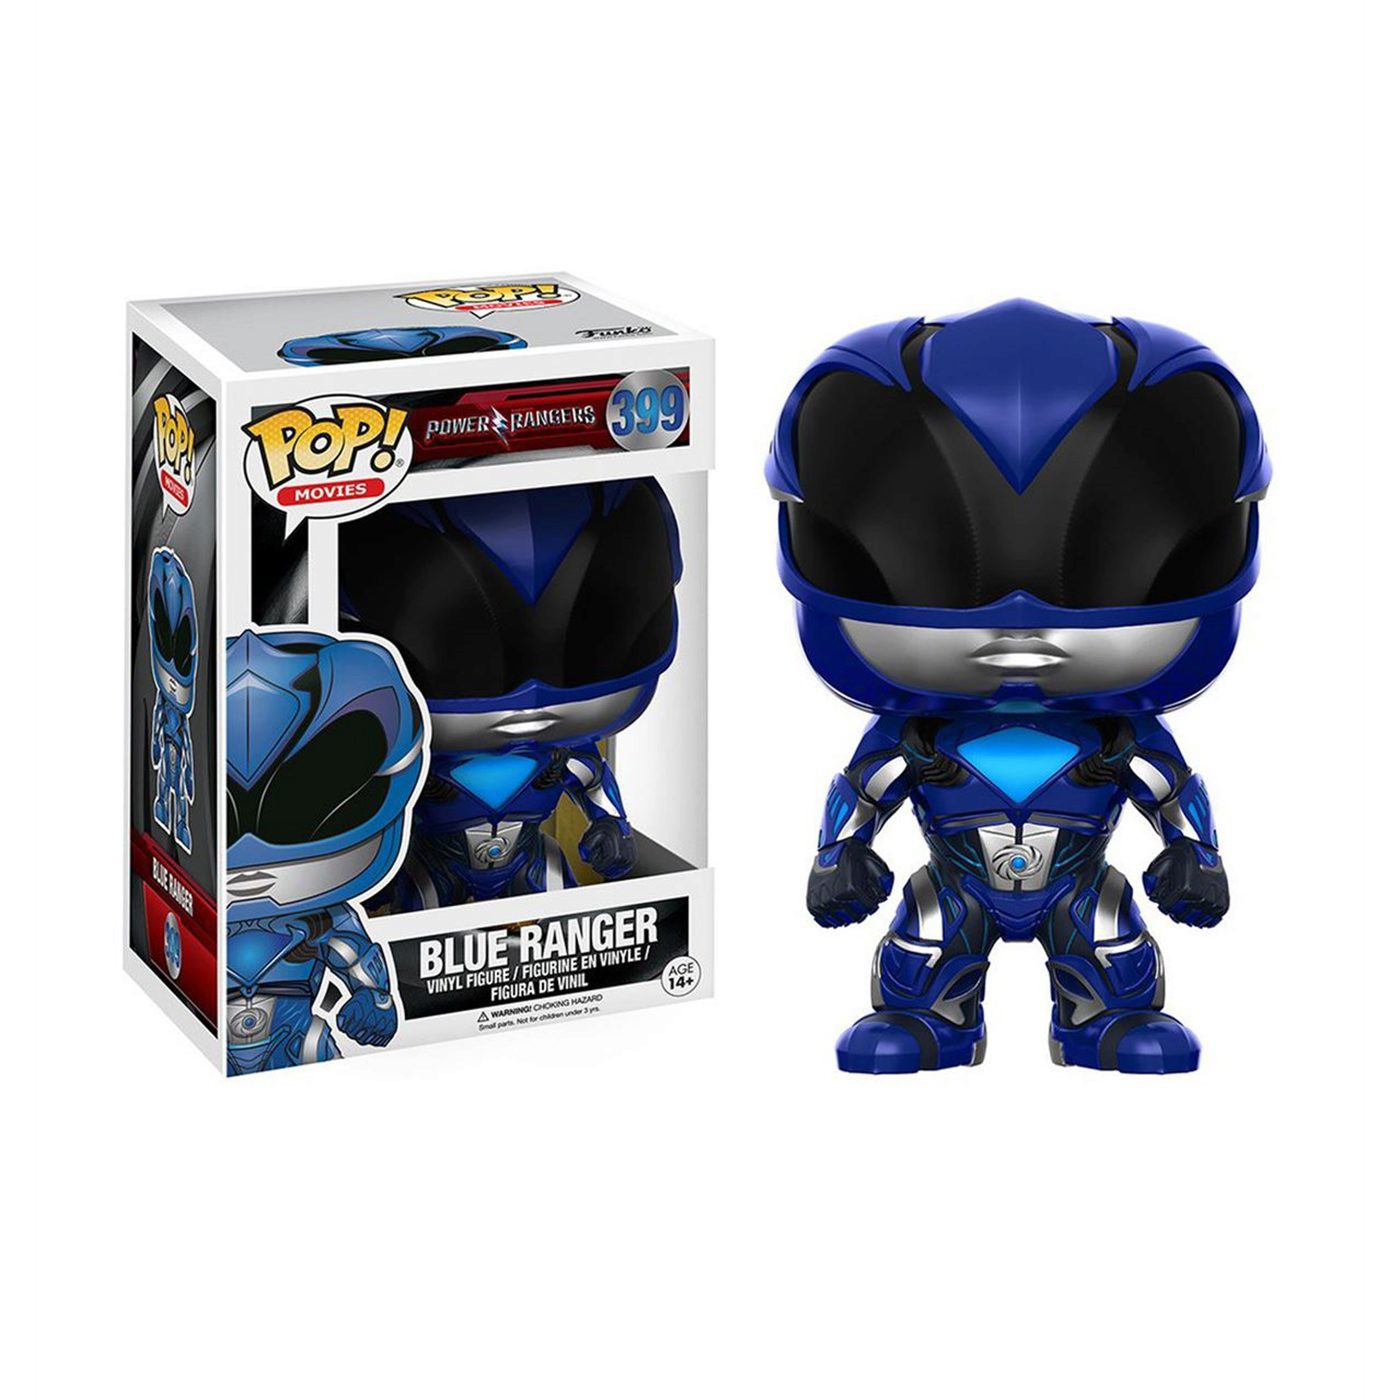 Power Rangers Movie Blue Ranger Funko Pop Vinyl Figure